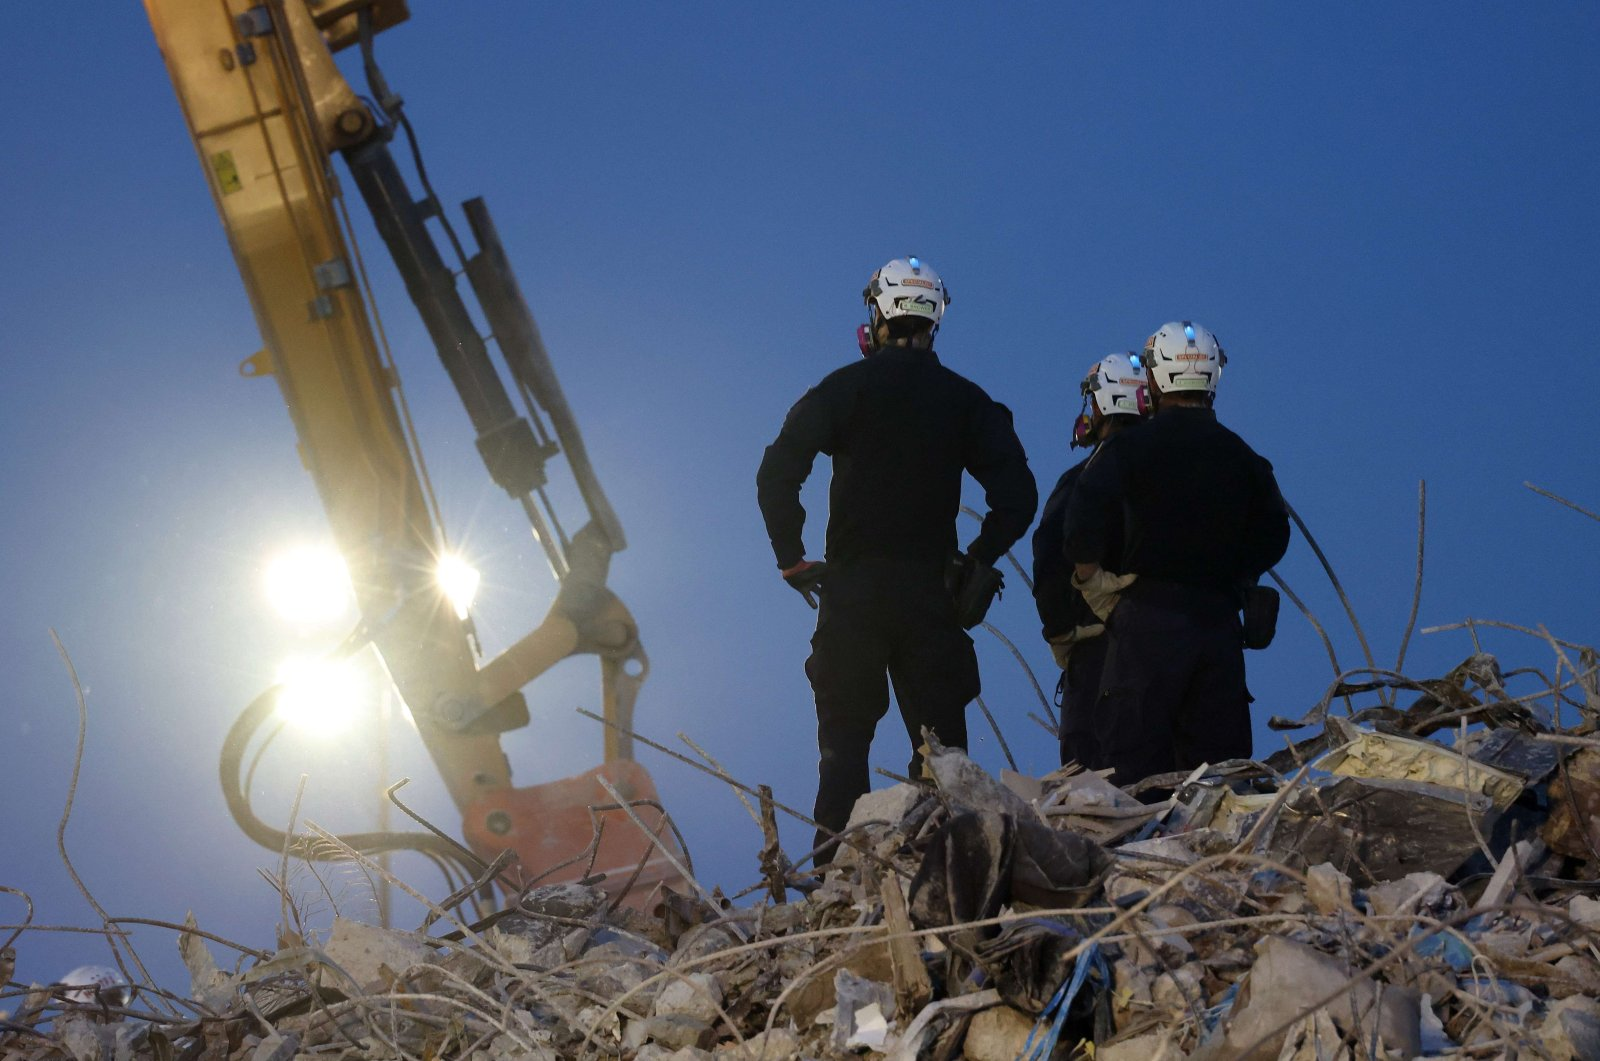 Search and rescue workers oversee an excavator dig through the rubble of the collapsed 12-story Champlain Towers South condo building on July 9, 2021 in Surfside, Florida. (Anna Moneymaker/Getty Images/AFP)